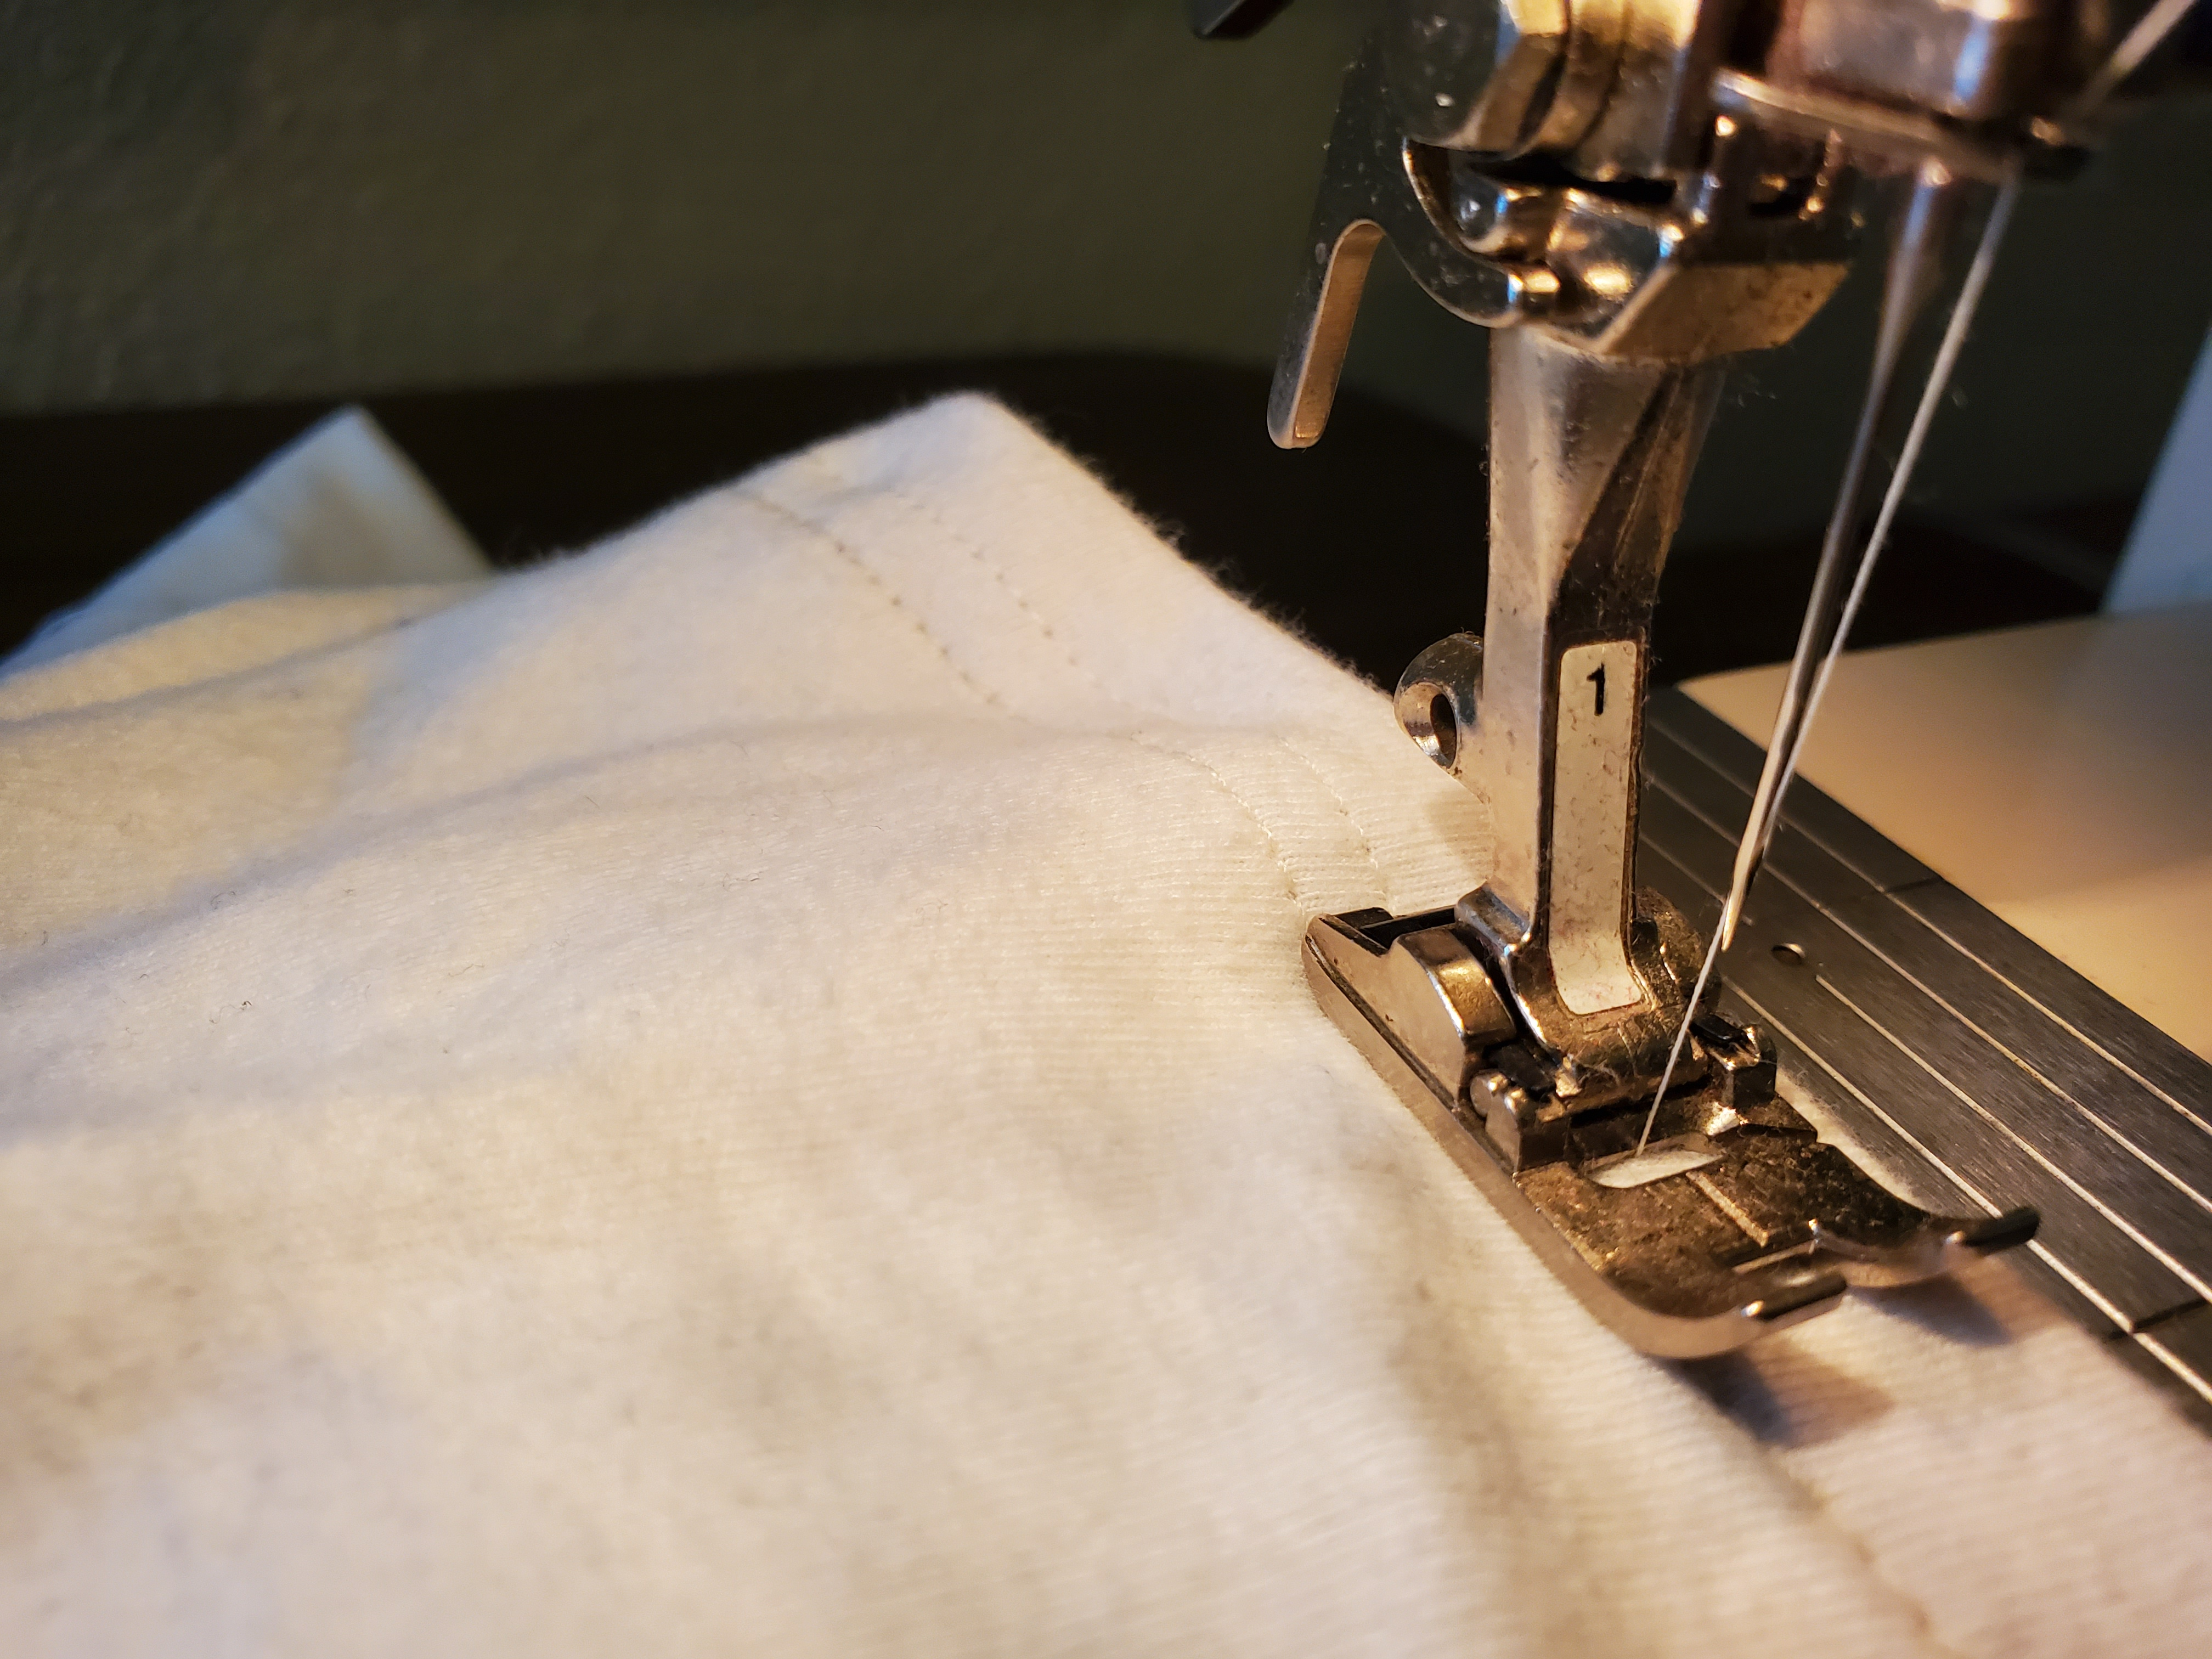 sewing machine needle and pressure foot on shirt, the second stitch line is visible